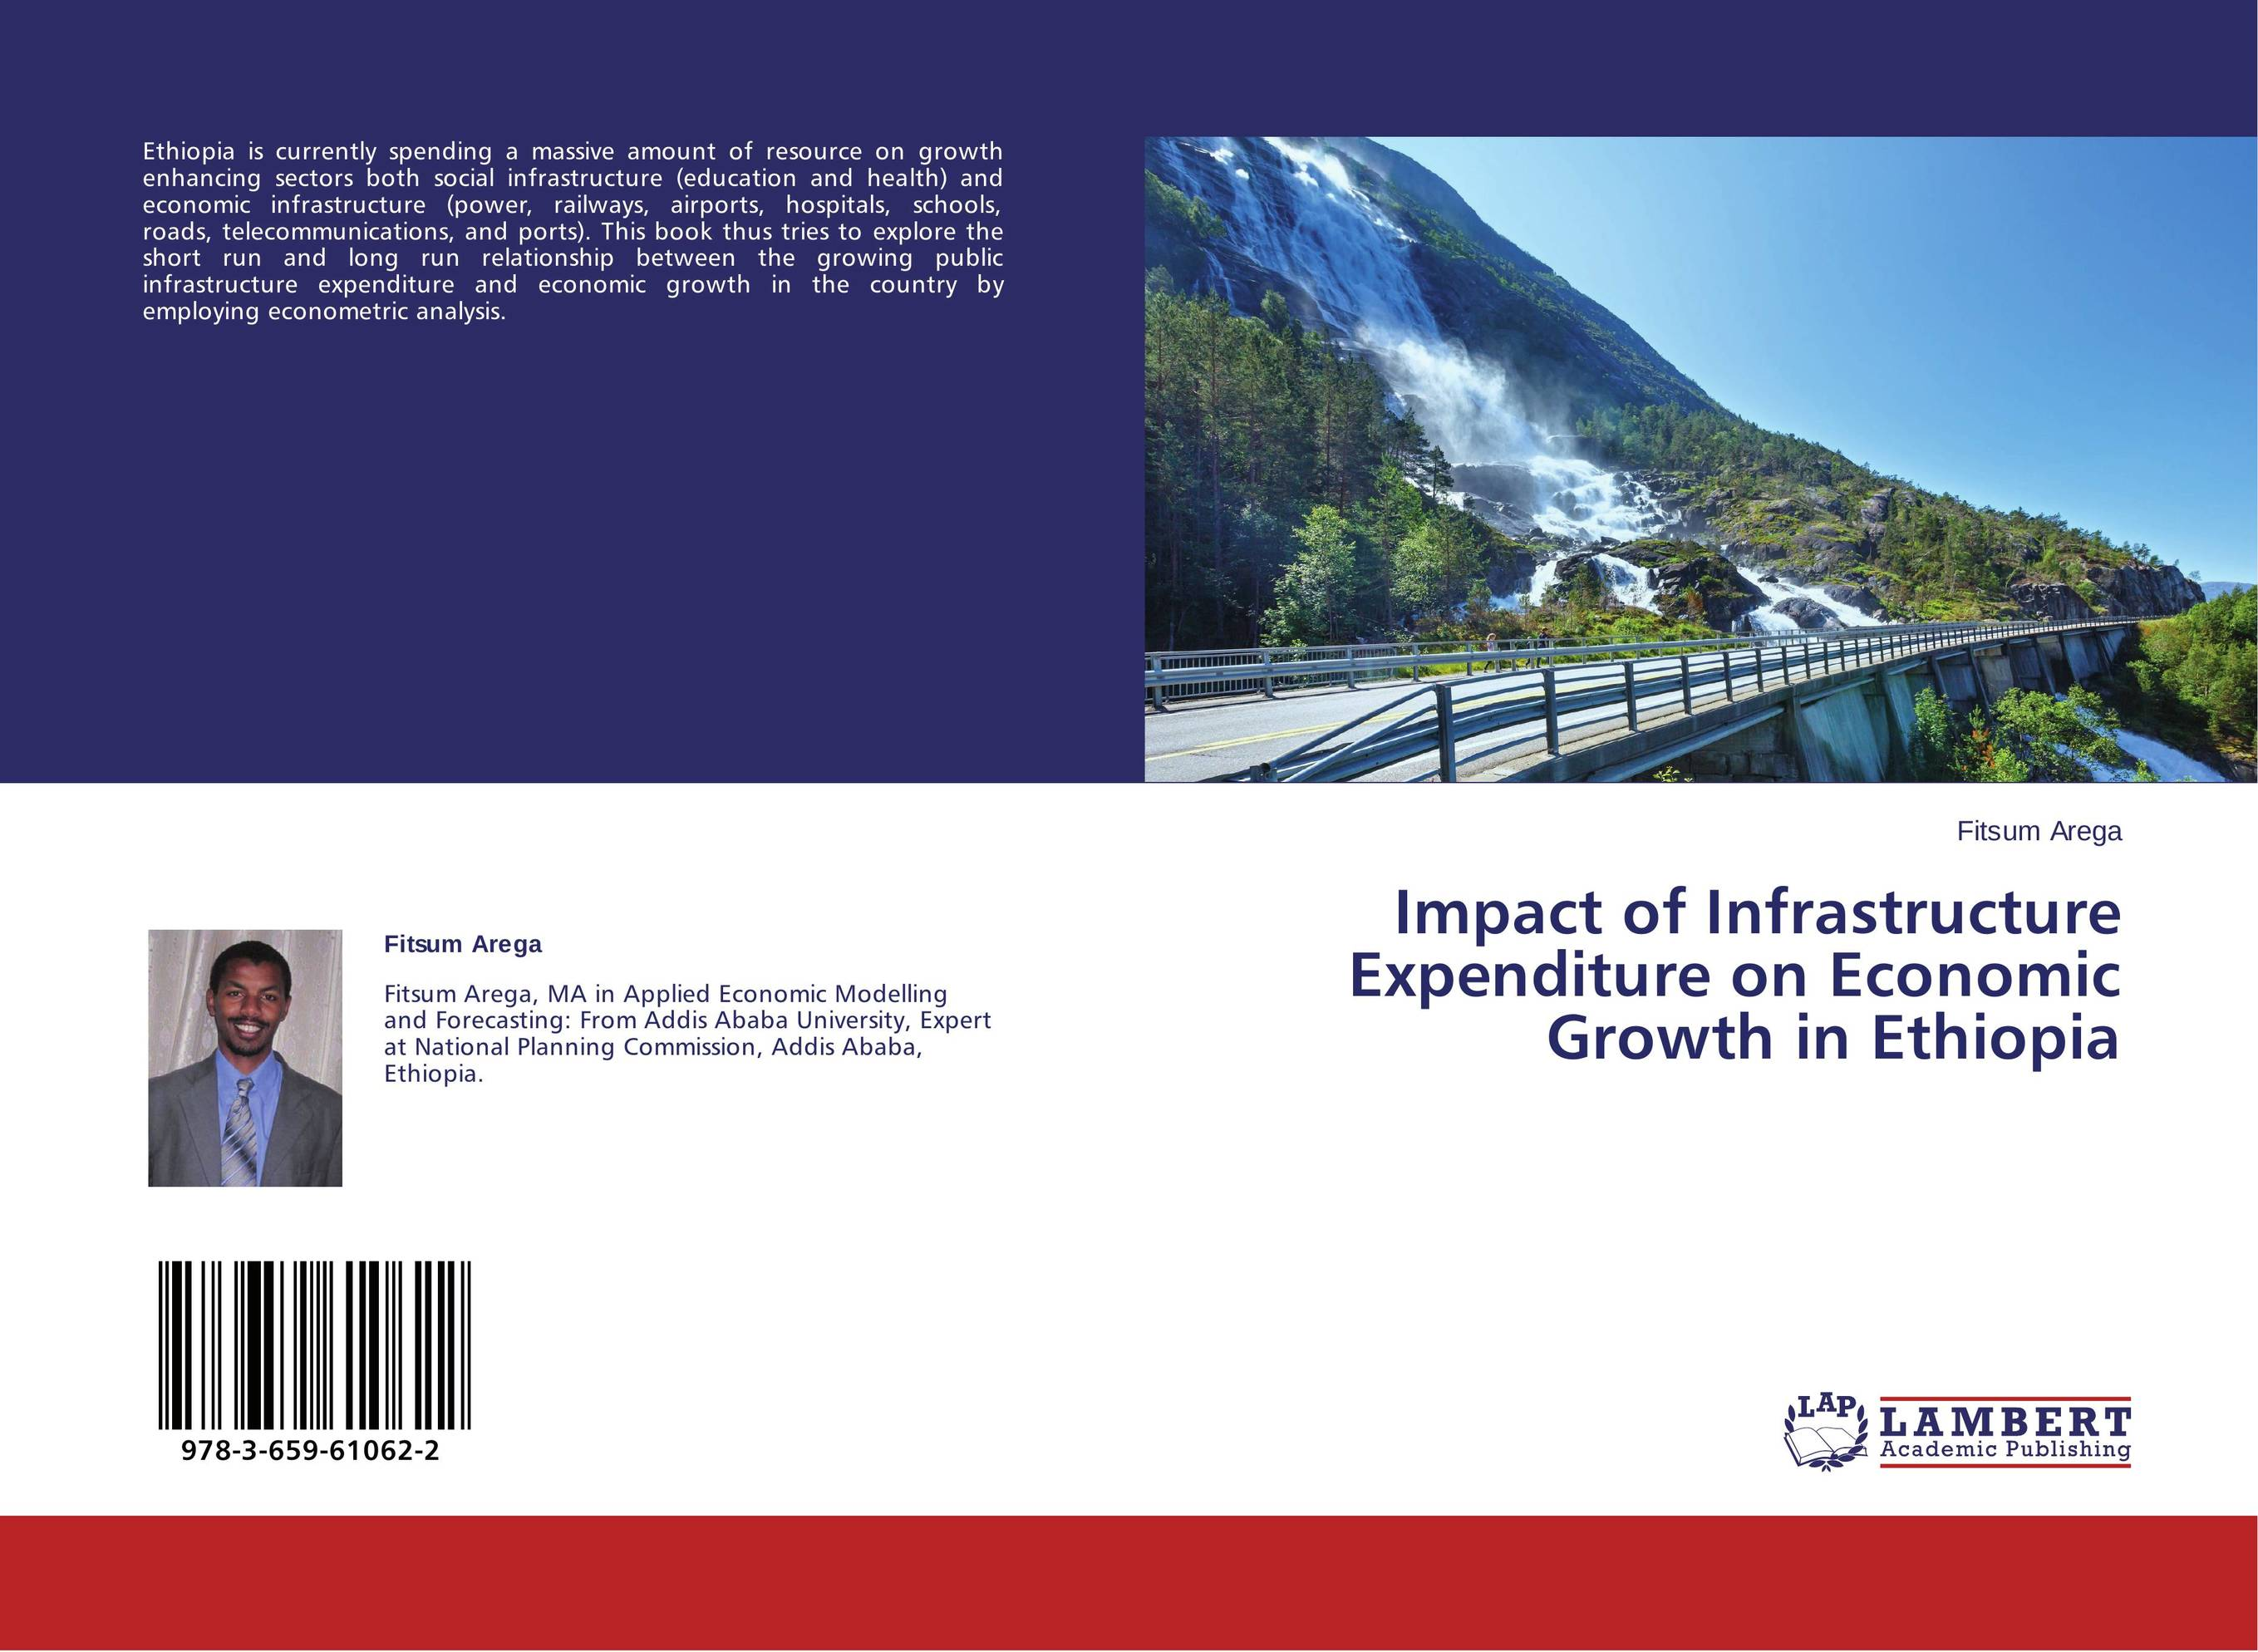 infrastructure in economic growth The relationship between infrastructure, growth and poverty is empirically robust in the macro- economic and microeconomic literature as well as in the rapidly evolving randomised field this article appraises the role of infrastructure in economic growth and poverty alleviation in africa.